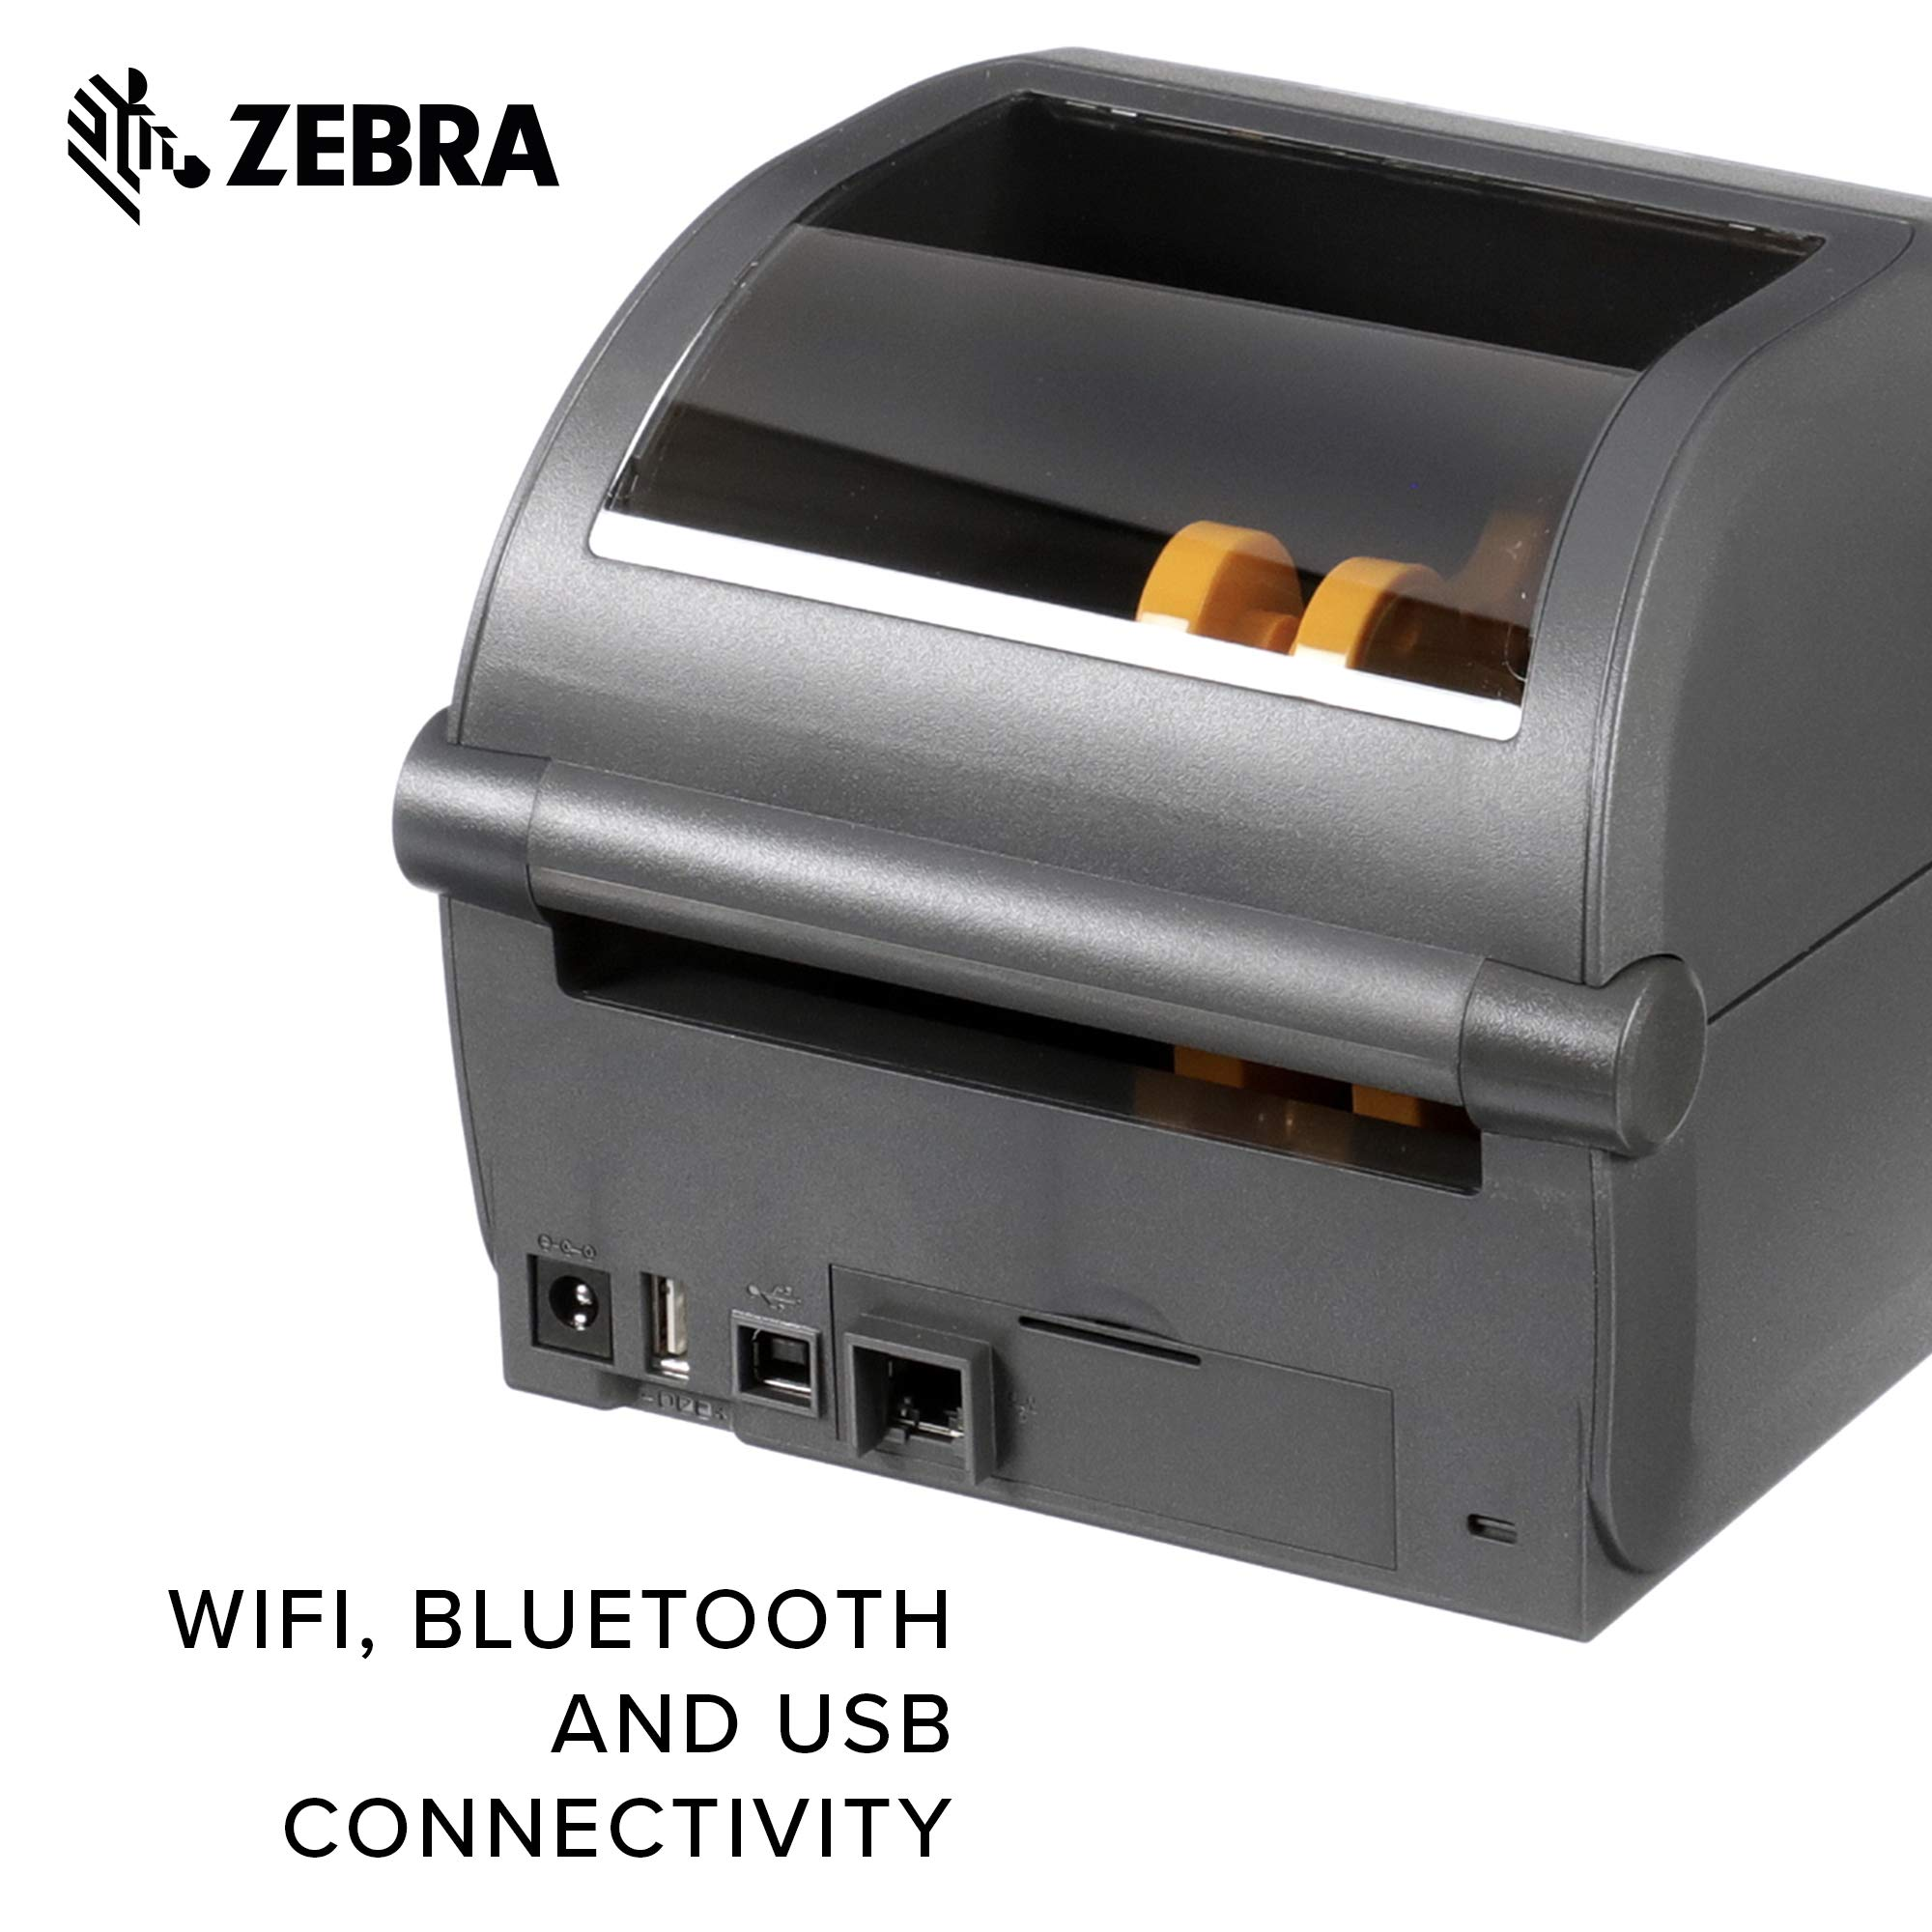 Zebra - ZD420d Direct Thermal Desktop Printer for Labels and Barcodes - Print Width 4 in - 300 dpi - Interface: WiFi, Bluetooth, USB - ZD42043-D01W01EZ by Zebra Technologies (Image #5)